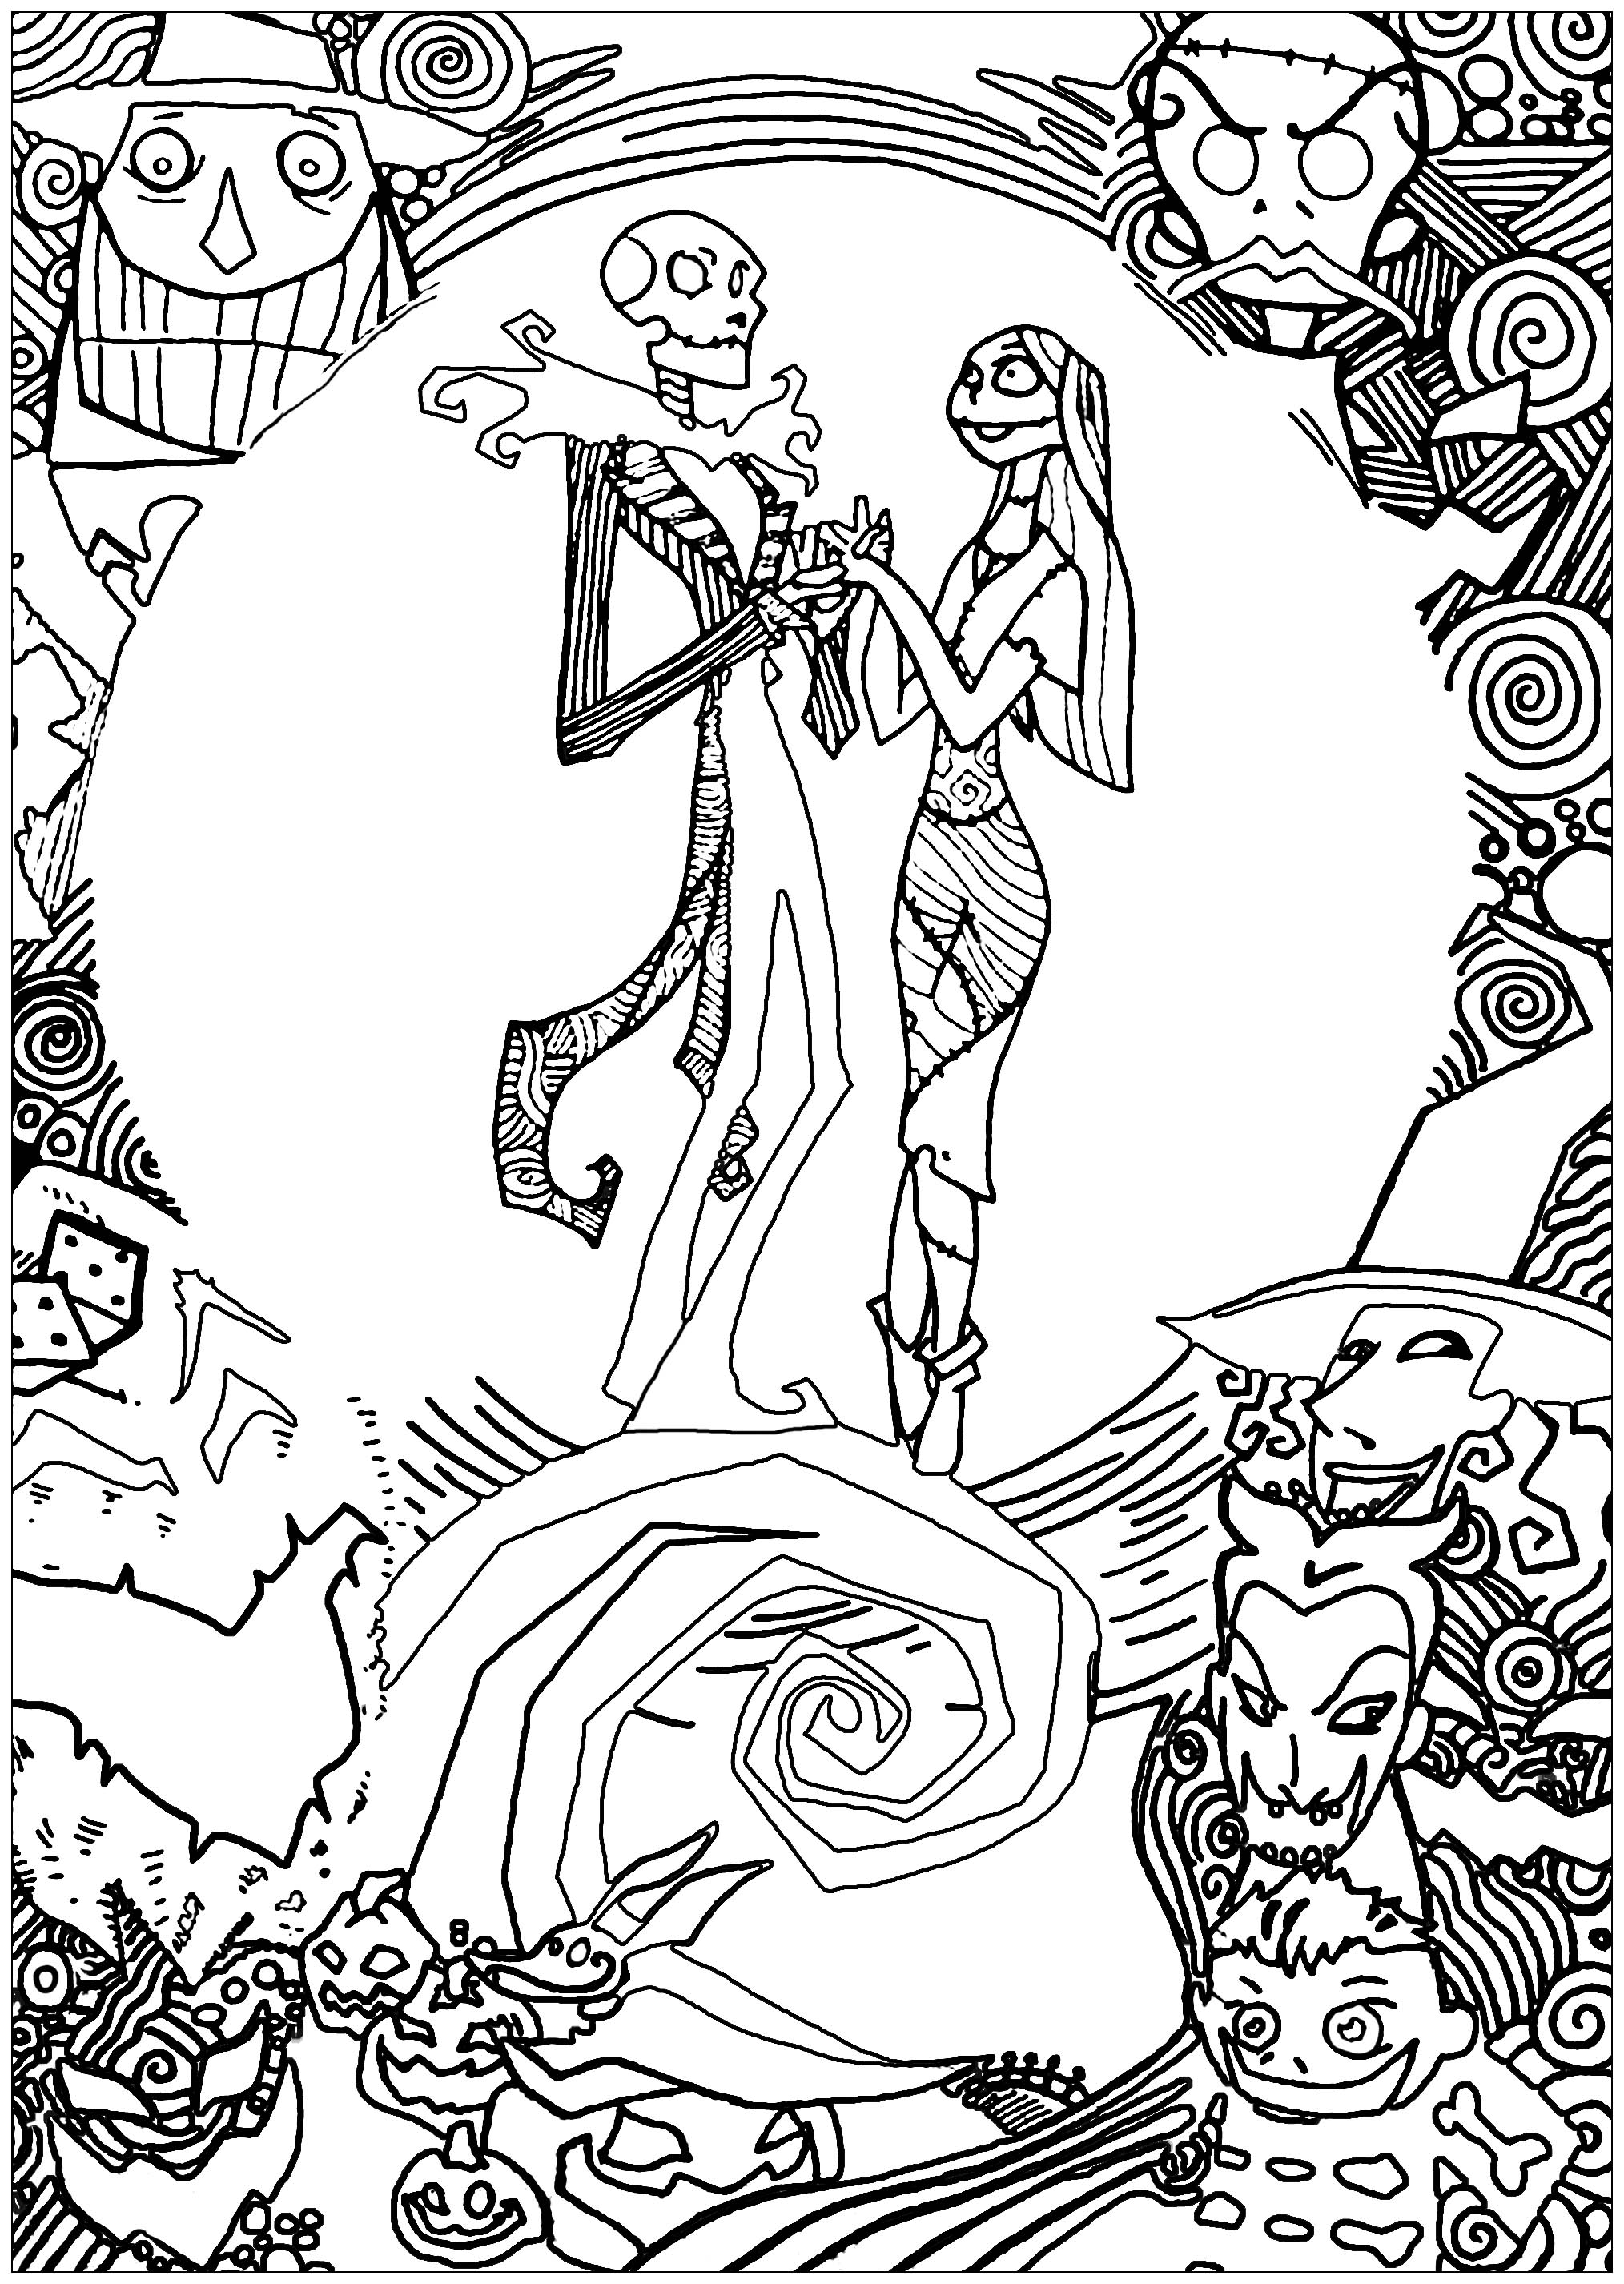 Nightmare Before Christmas Coloring Pages Nighmare Before Christmas With Sully  Christmas  Coloring Pages